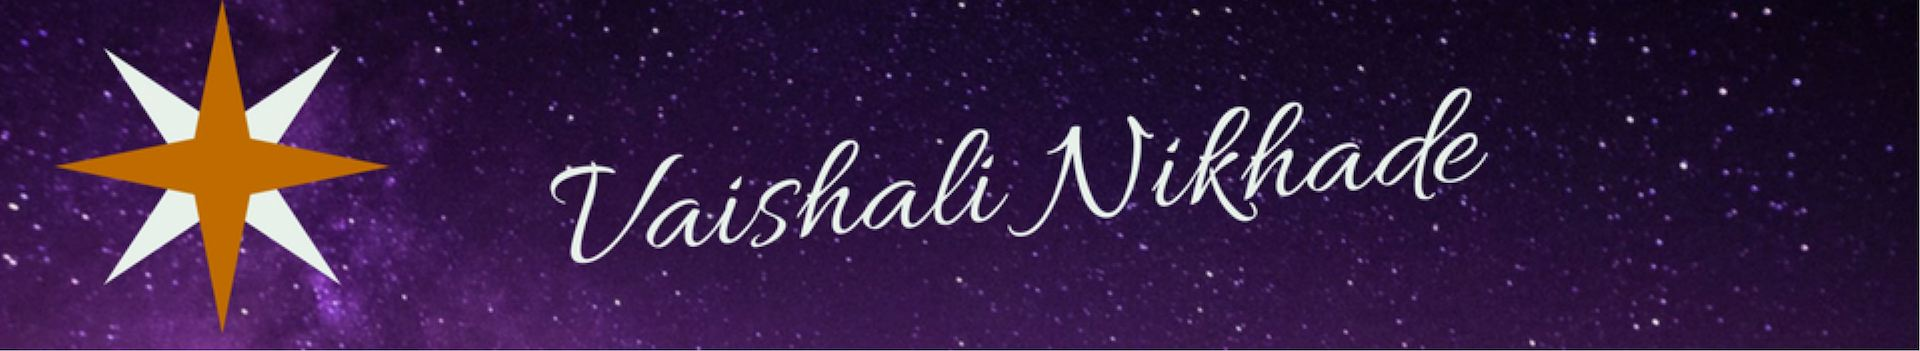 vaishali-site-header-name